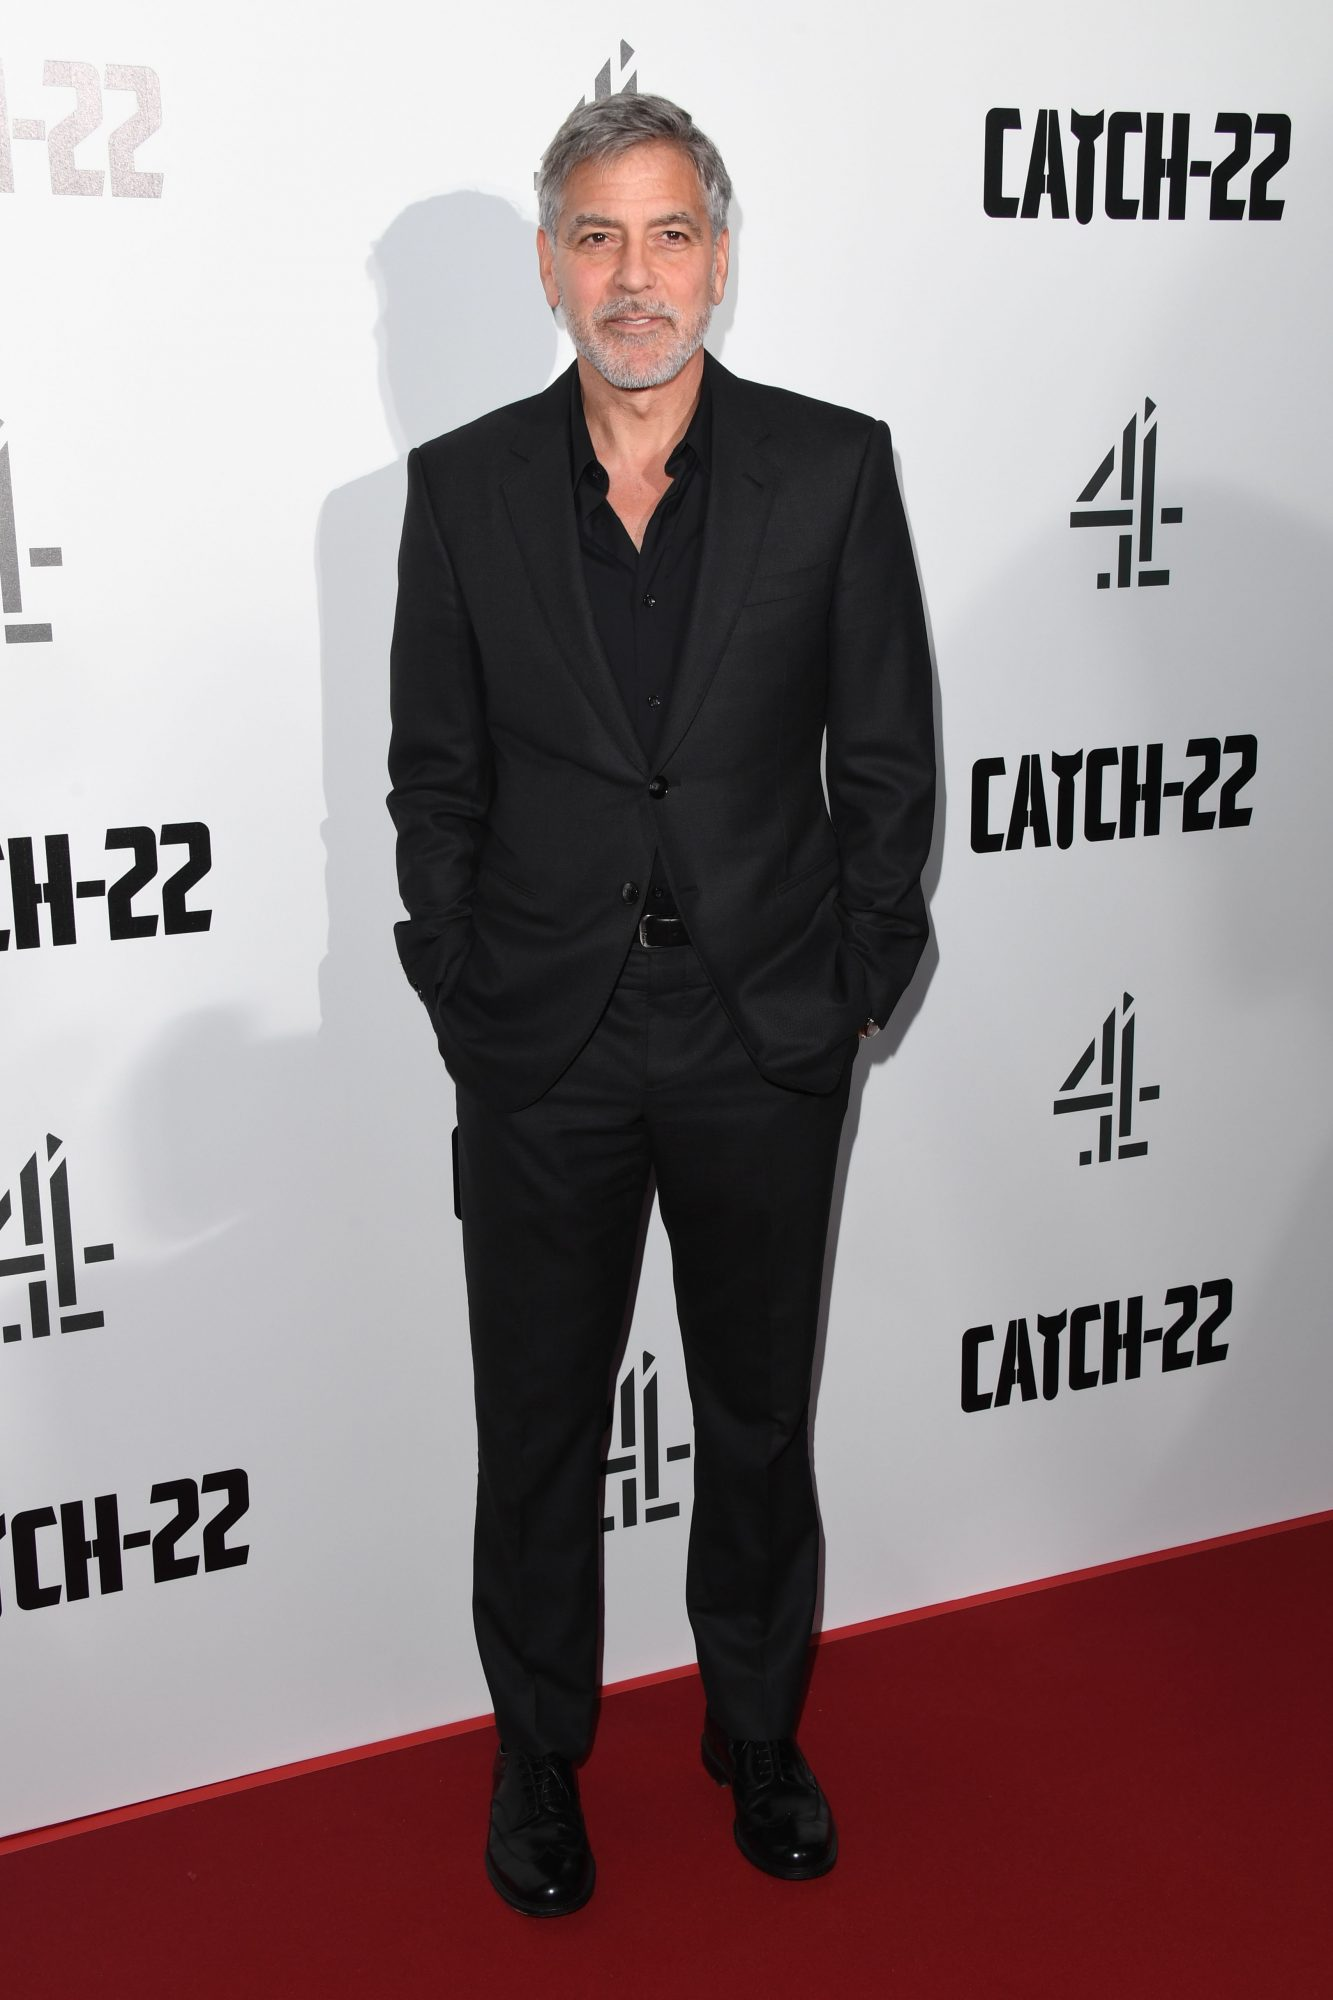 """LONDON, ENGLAND - MAY 15: George Clooney attends the """"Catch 22"""" UK premiere on May 15, 2019 in London, United Kingdom. (Photo by Stuart C. Wilson/Getty Images)"""